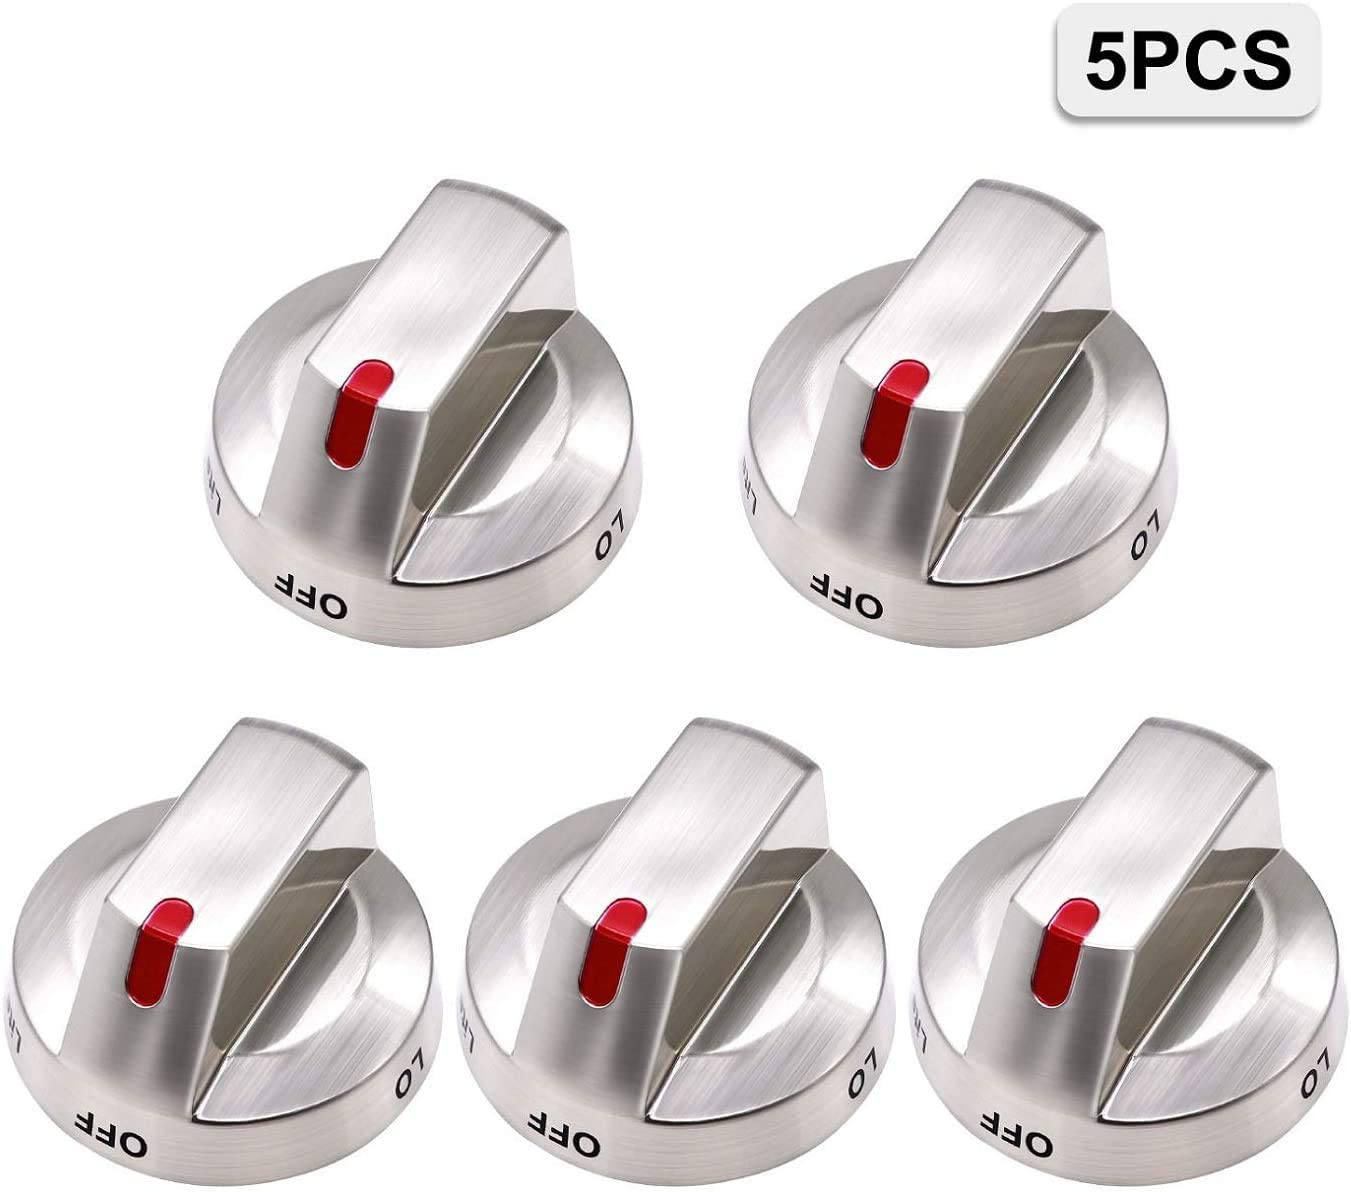 [Upgraded] DG64-00473A Range Burner Knob Dial by CC.KU, Compatible with Samsung Gas Range Oven, 5 Pack Replacement Part for AP5917439, PS9606608, DG64-00472A, DG64-00347B, DG64-00472B